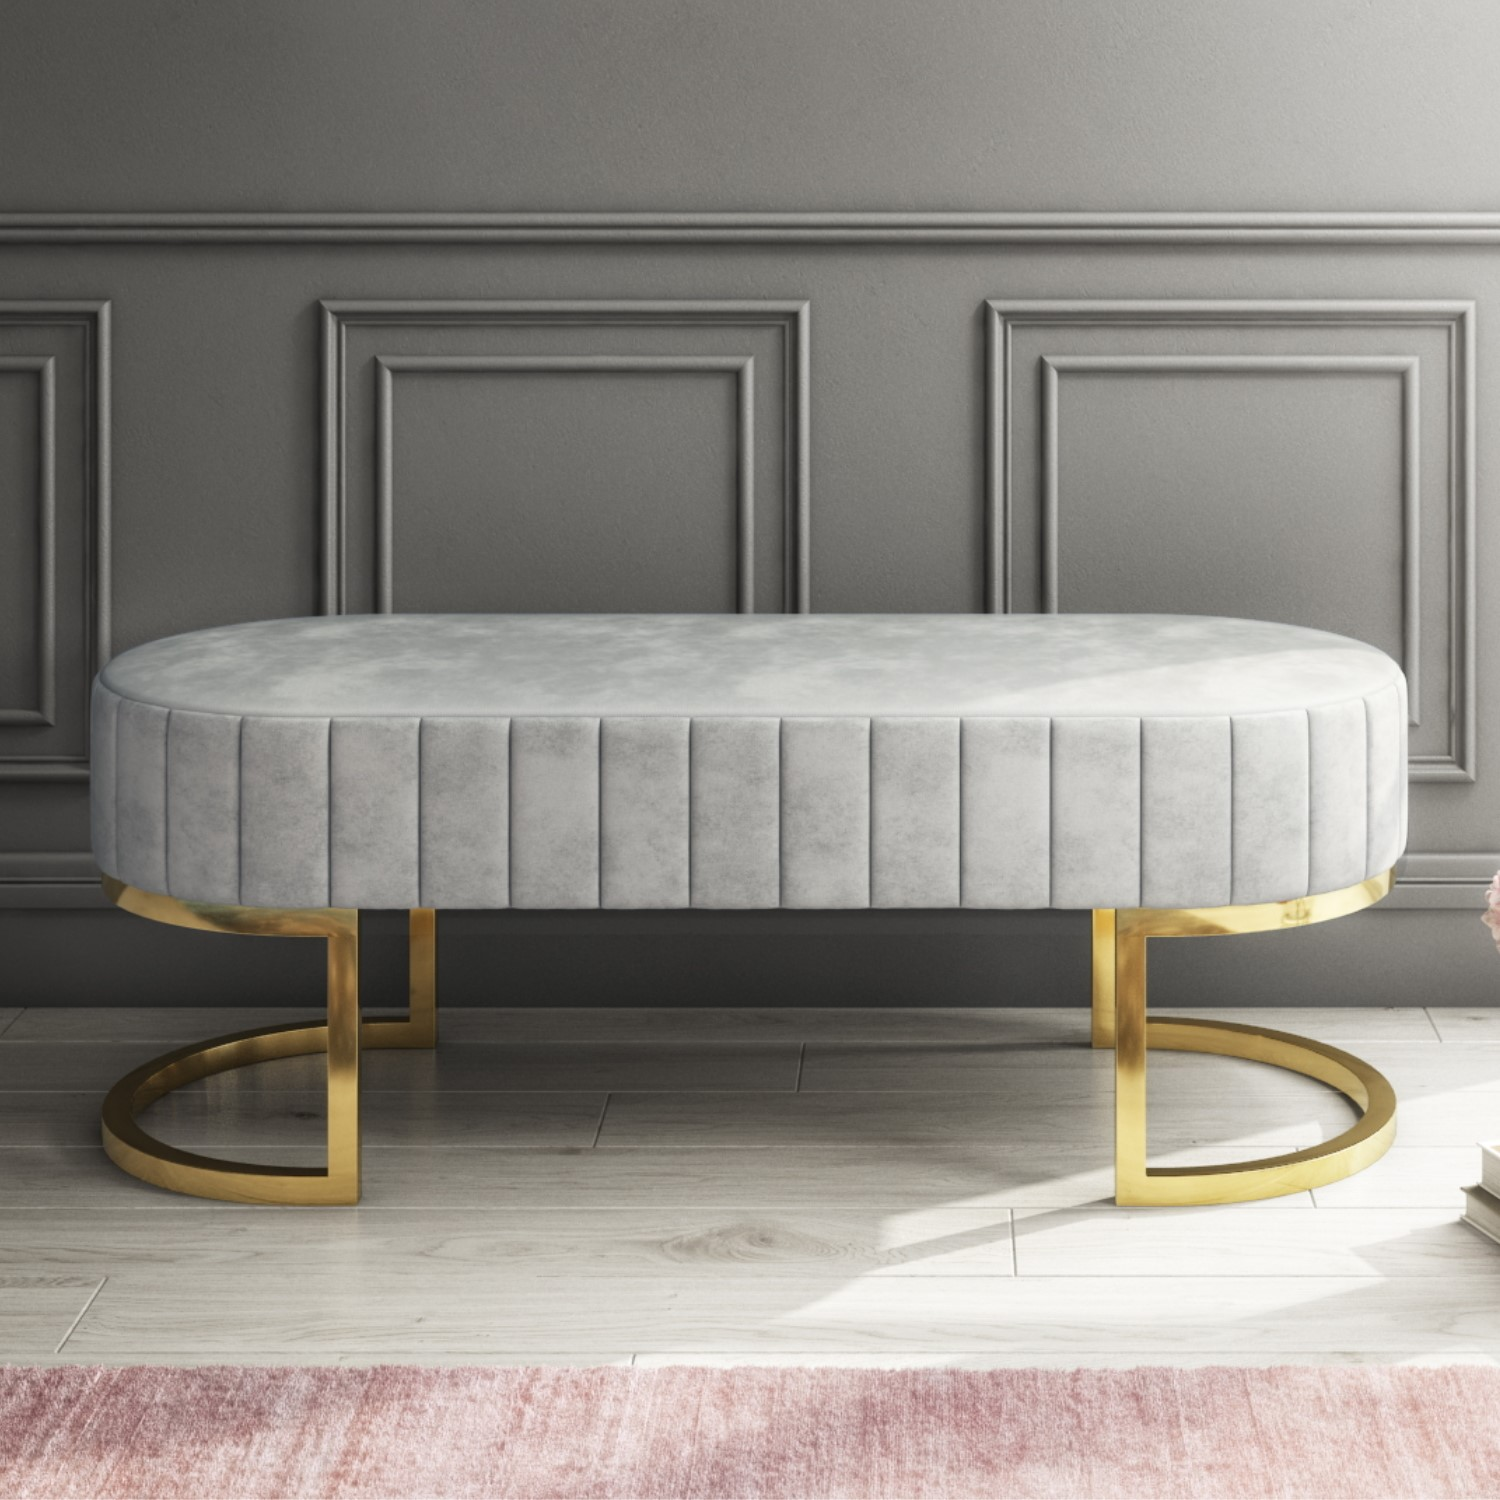 new arrival a8c3b 2f02f Safina Velvet Hallway Bench in Silver Grey with Gold Legs